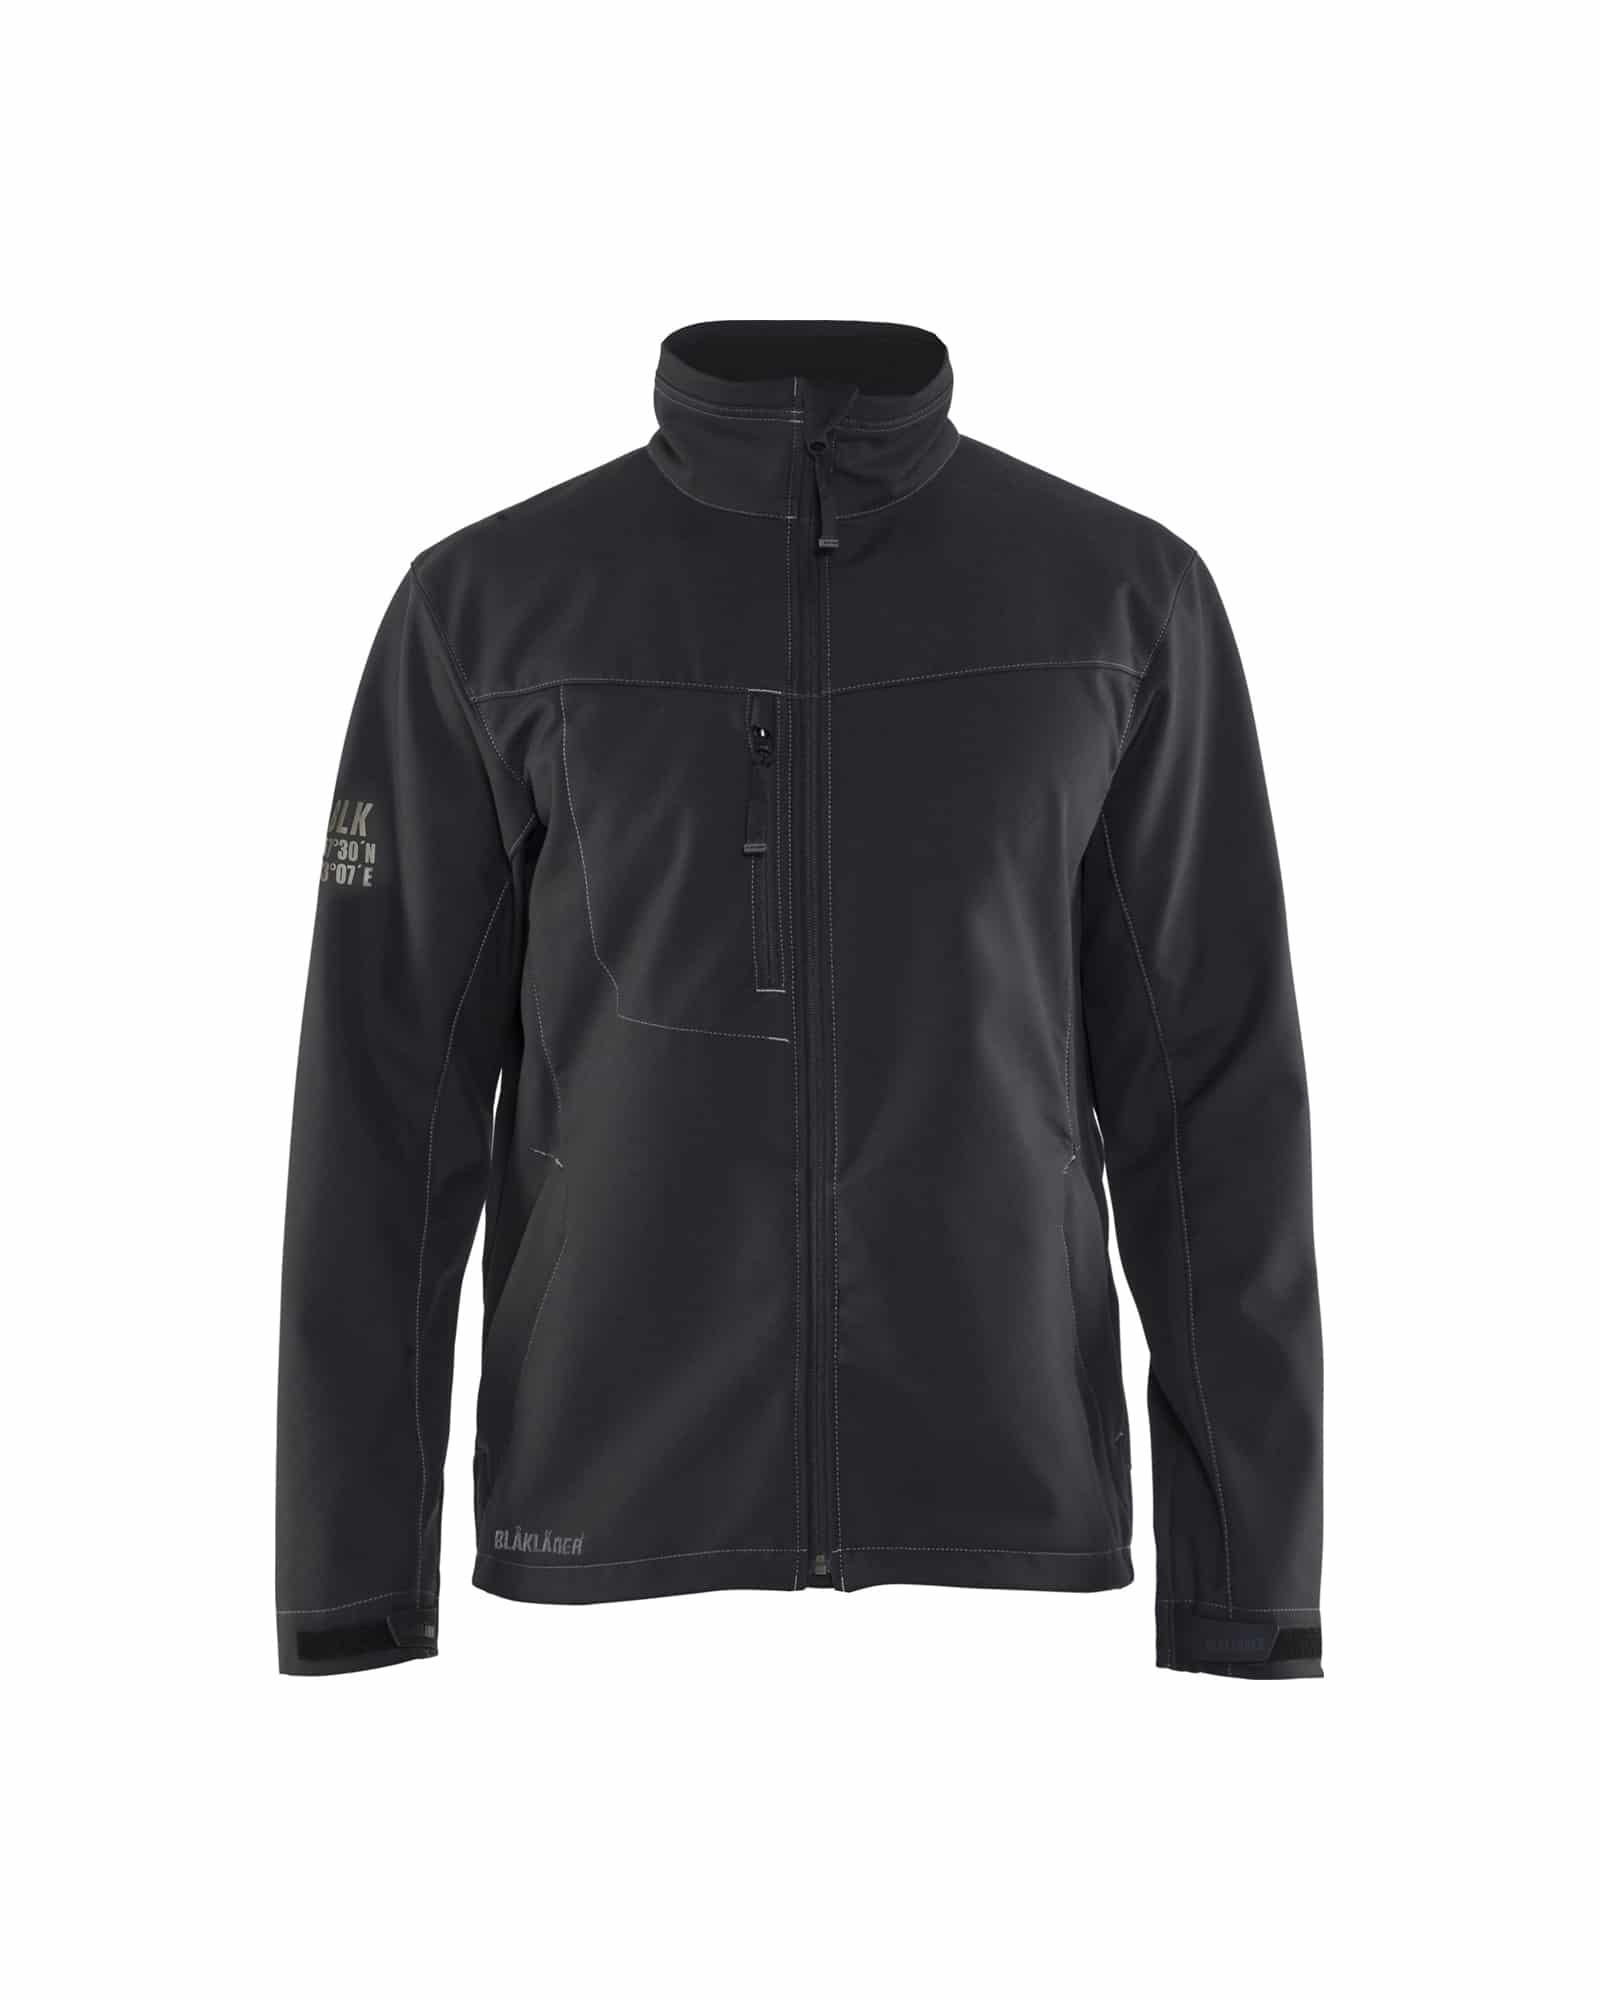 WTBL4957 - WorkwearToronto.com - Men's Softshell Jacket - Black